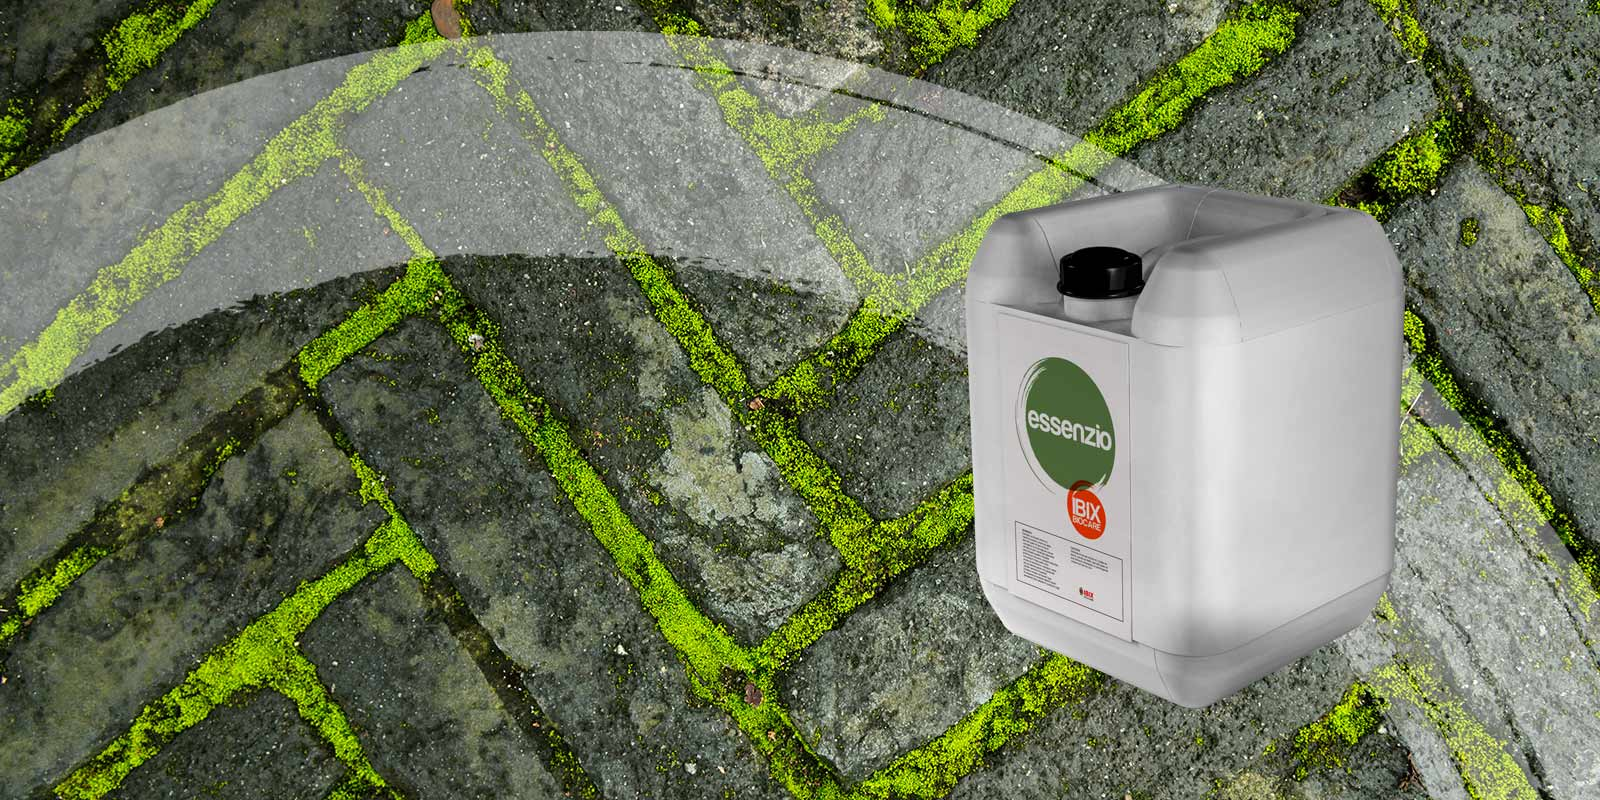 Essenzio is a Eco-friendly and Natural Moss Killer